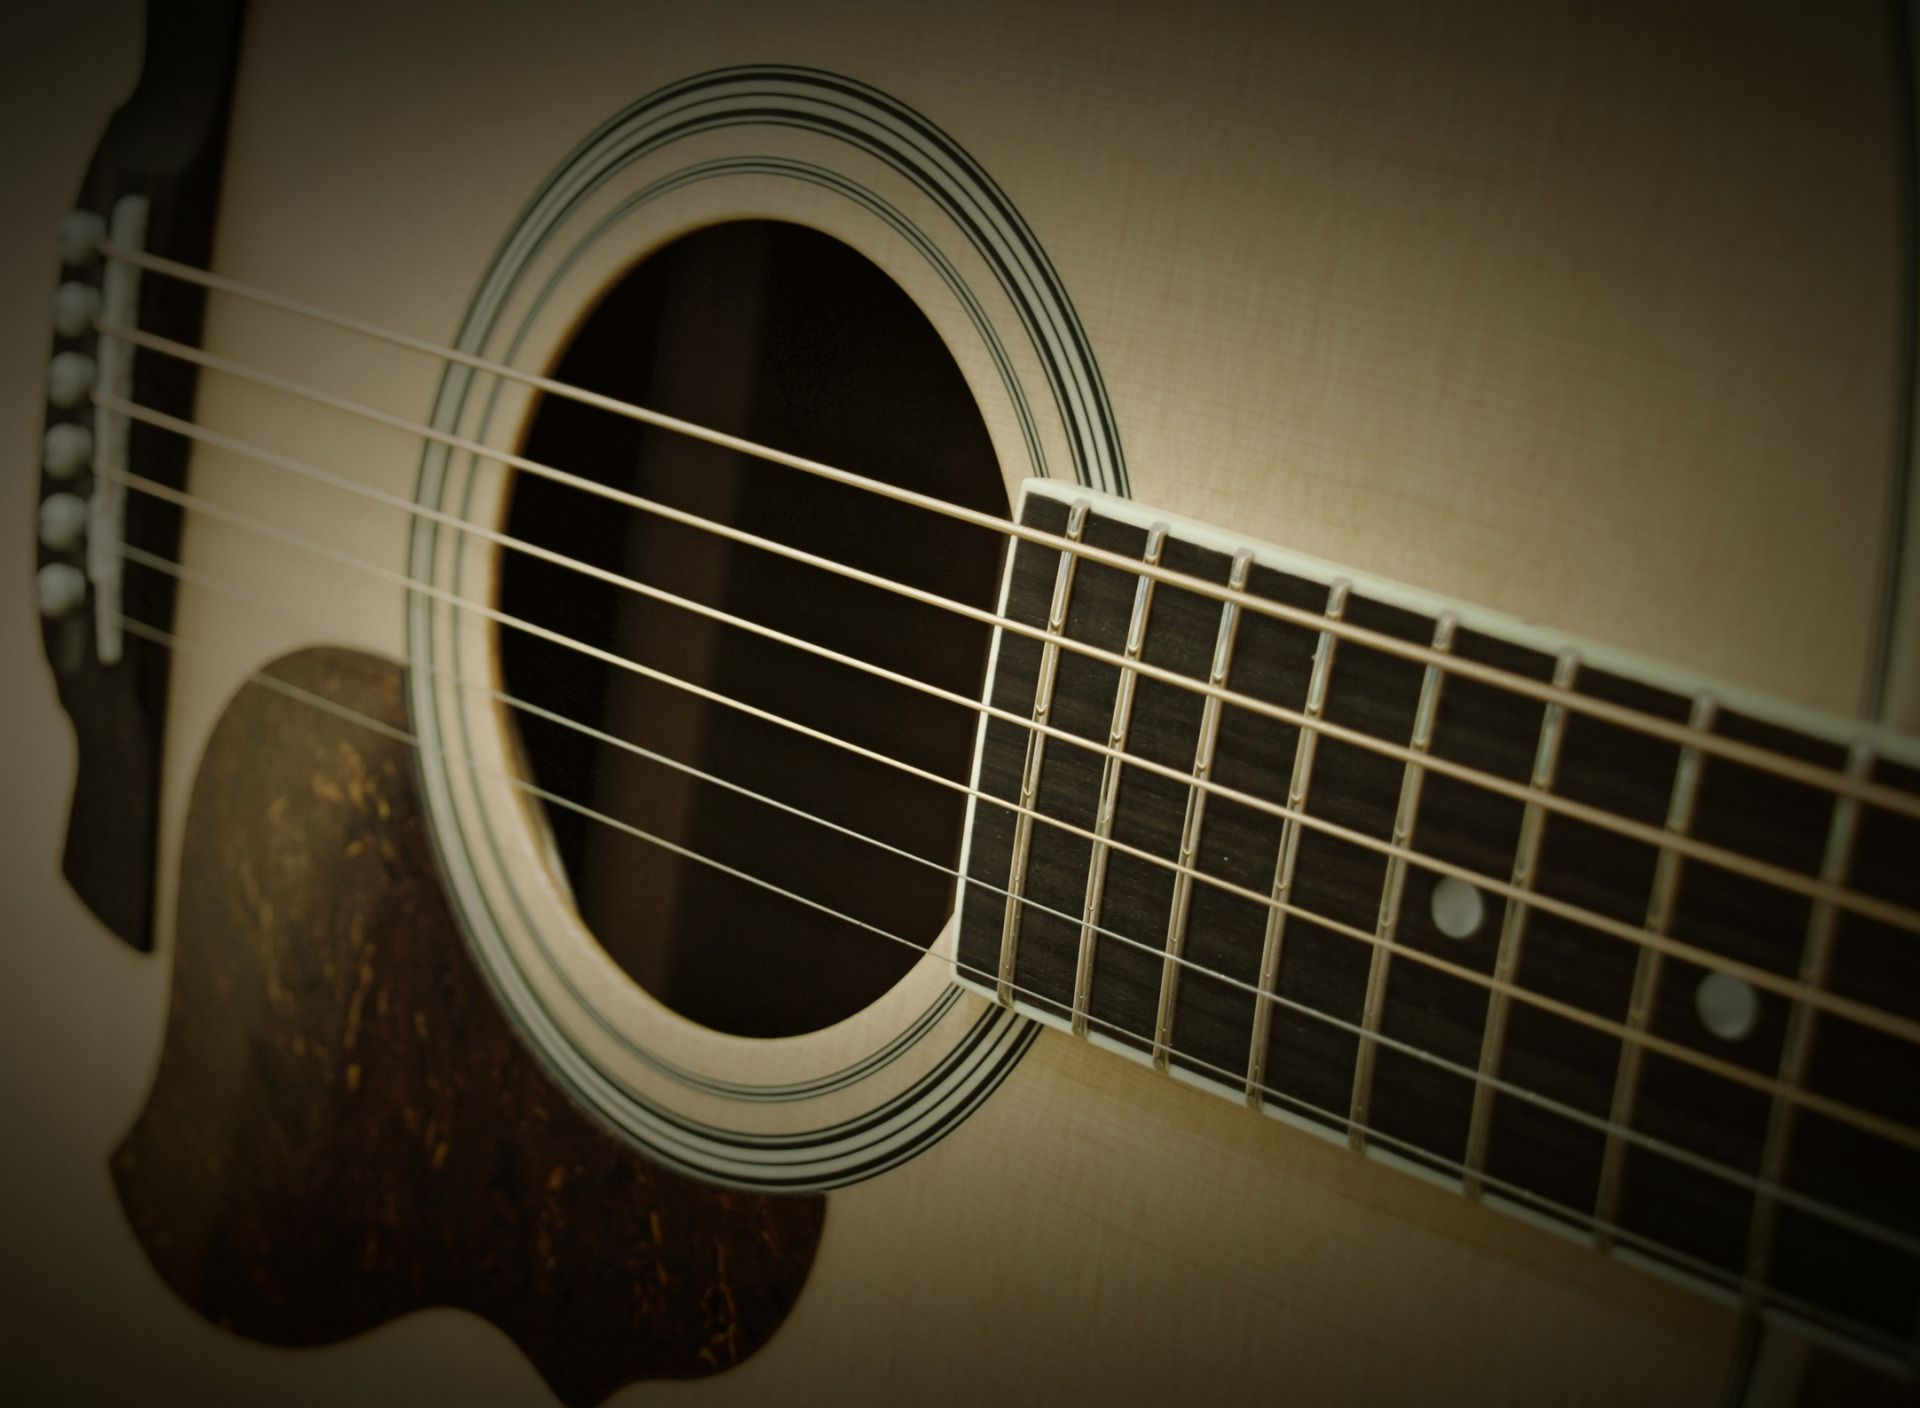 Acoustic Guitar strings, Free Wallpaper and Background